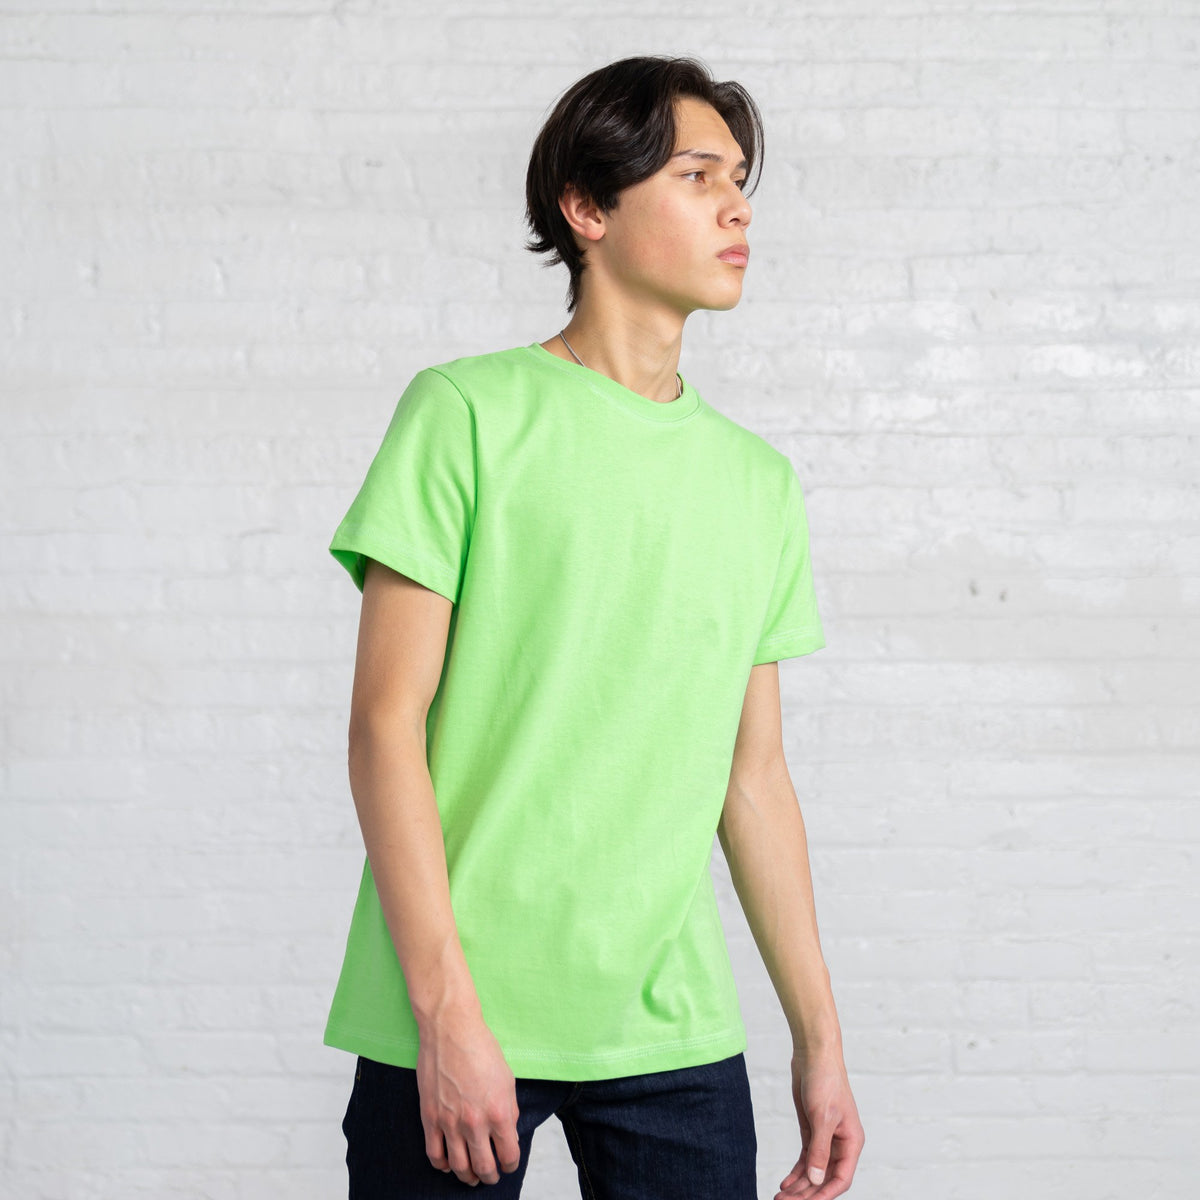 Color:Bright Green Fitted Combed Cotton Men's T-shirts